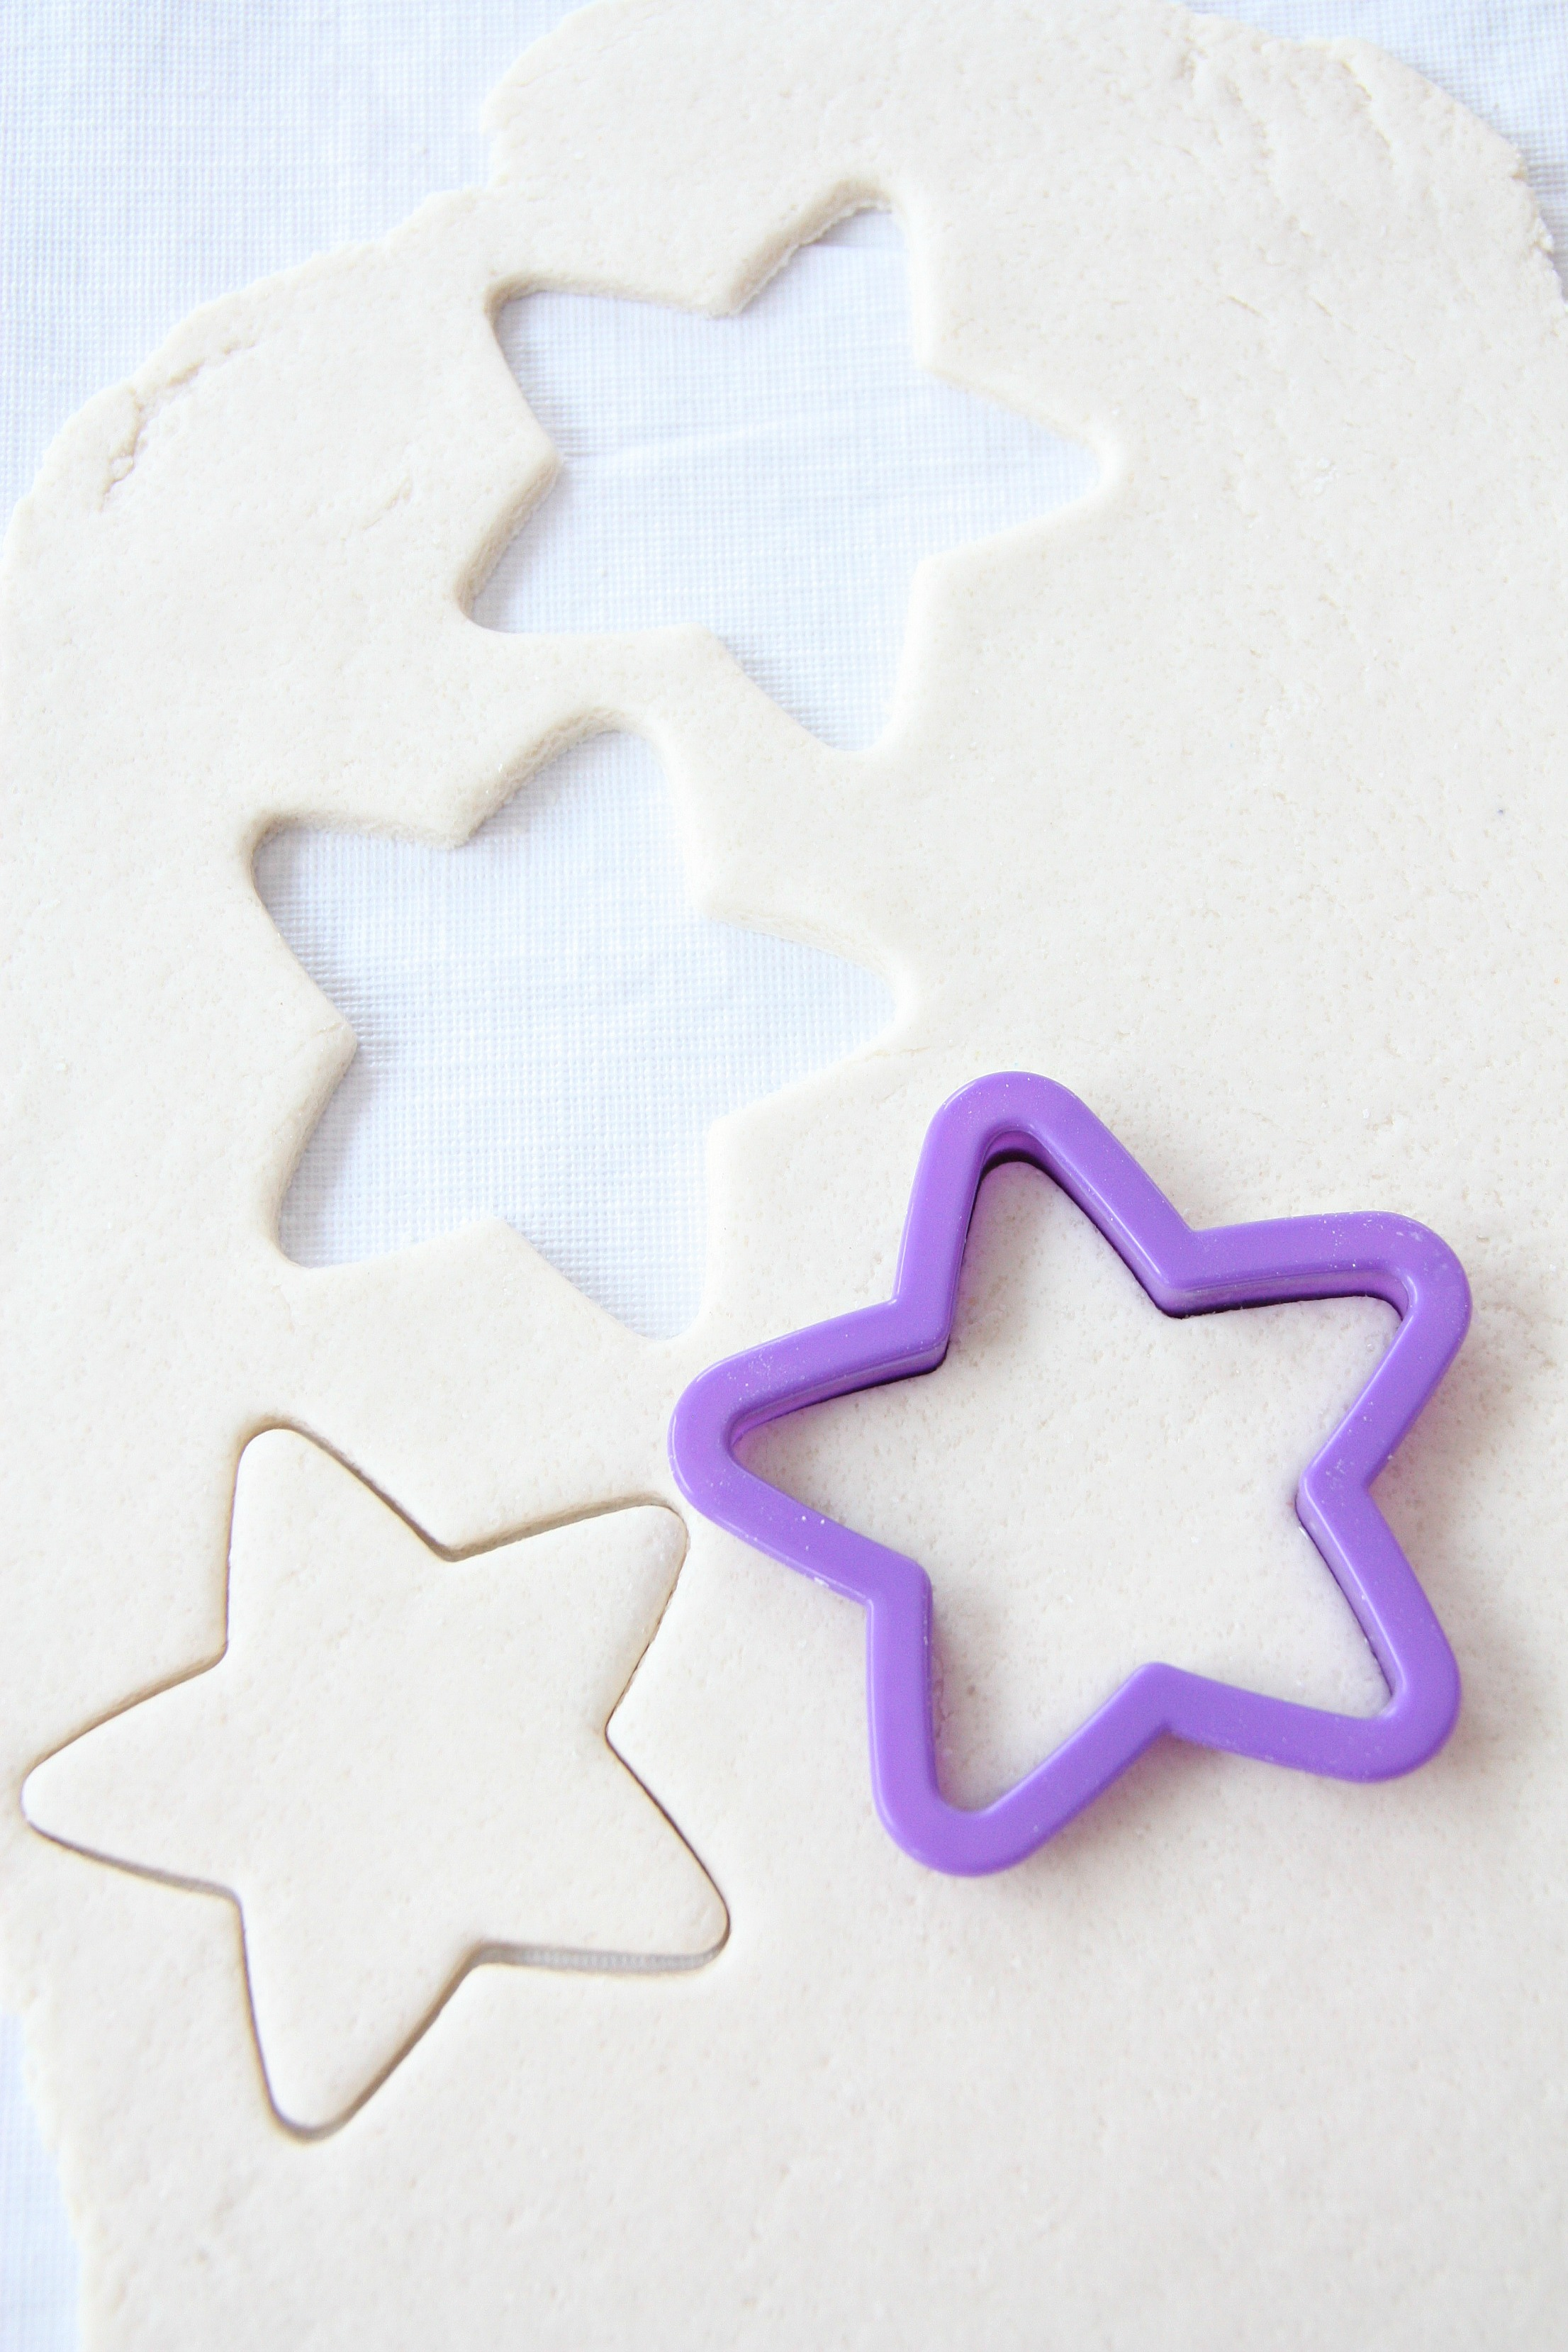 salt dough ornaments 1